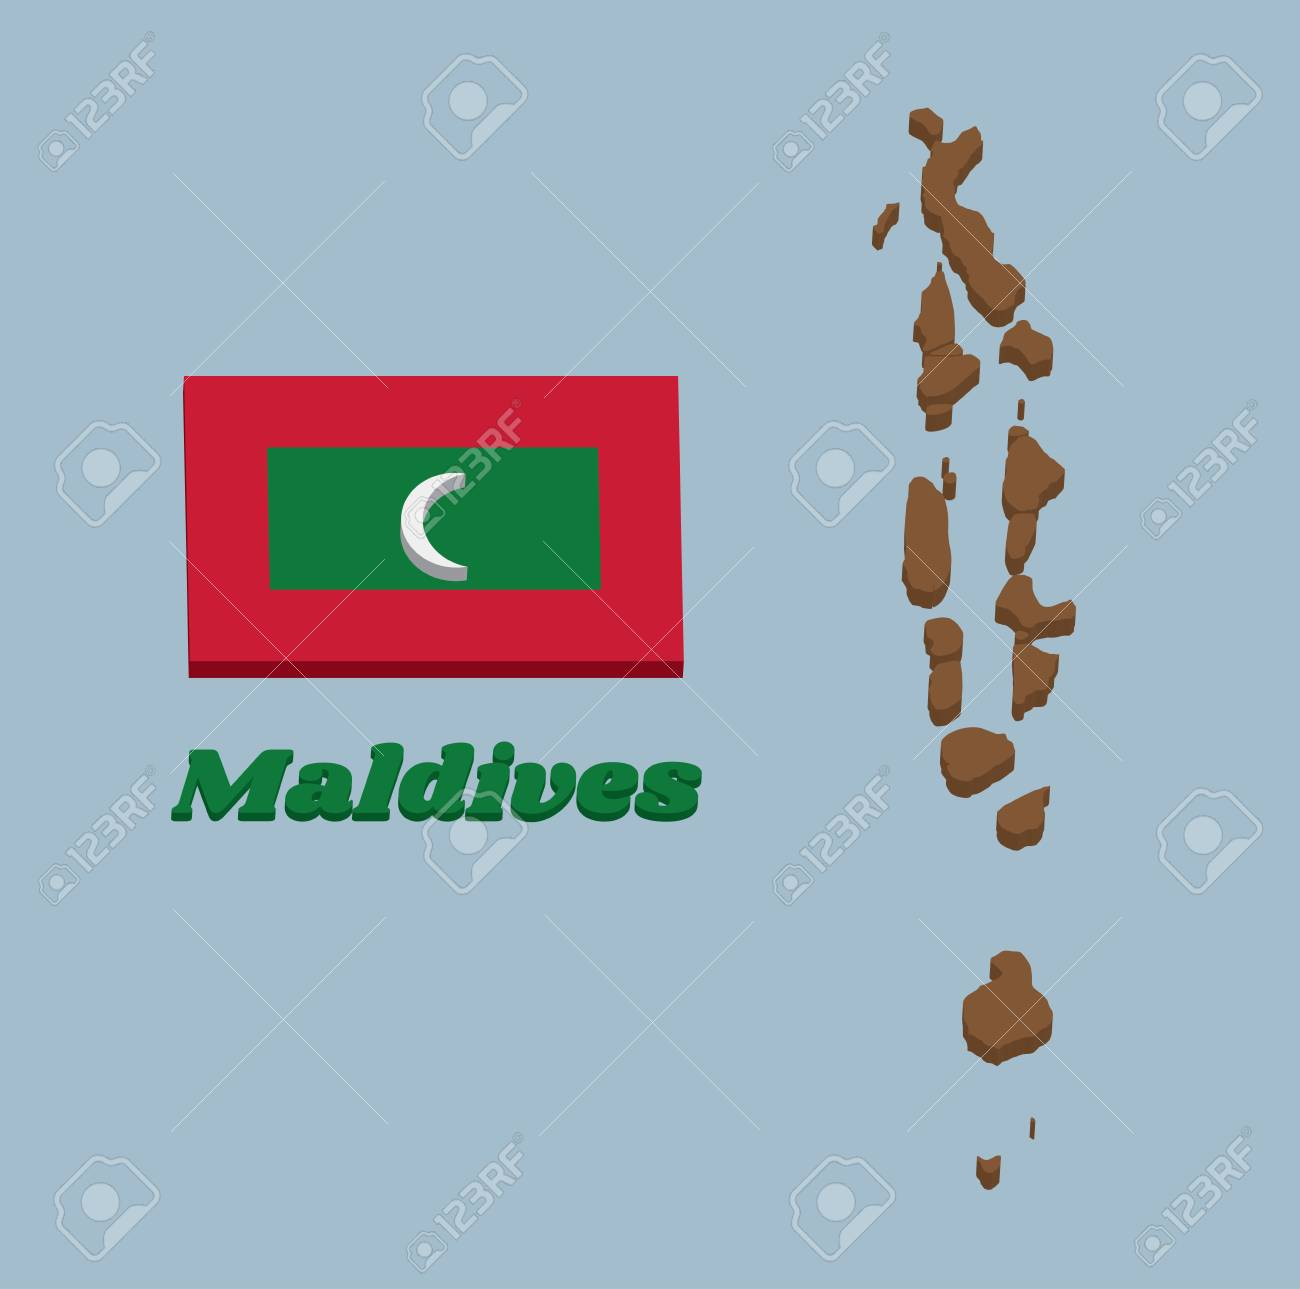 3d Map Outline And Flag Of Maldives Green With A Red Border